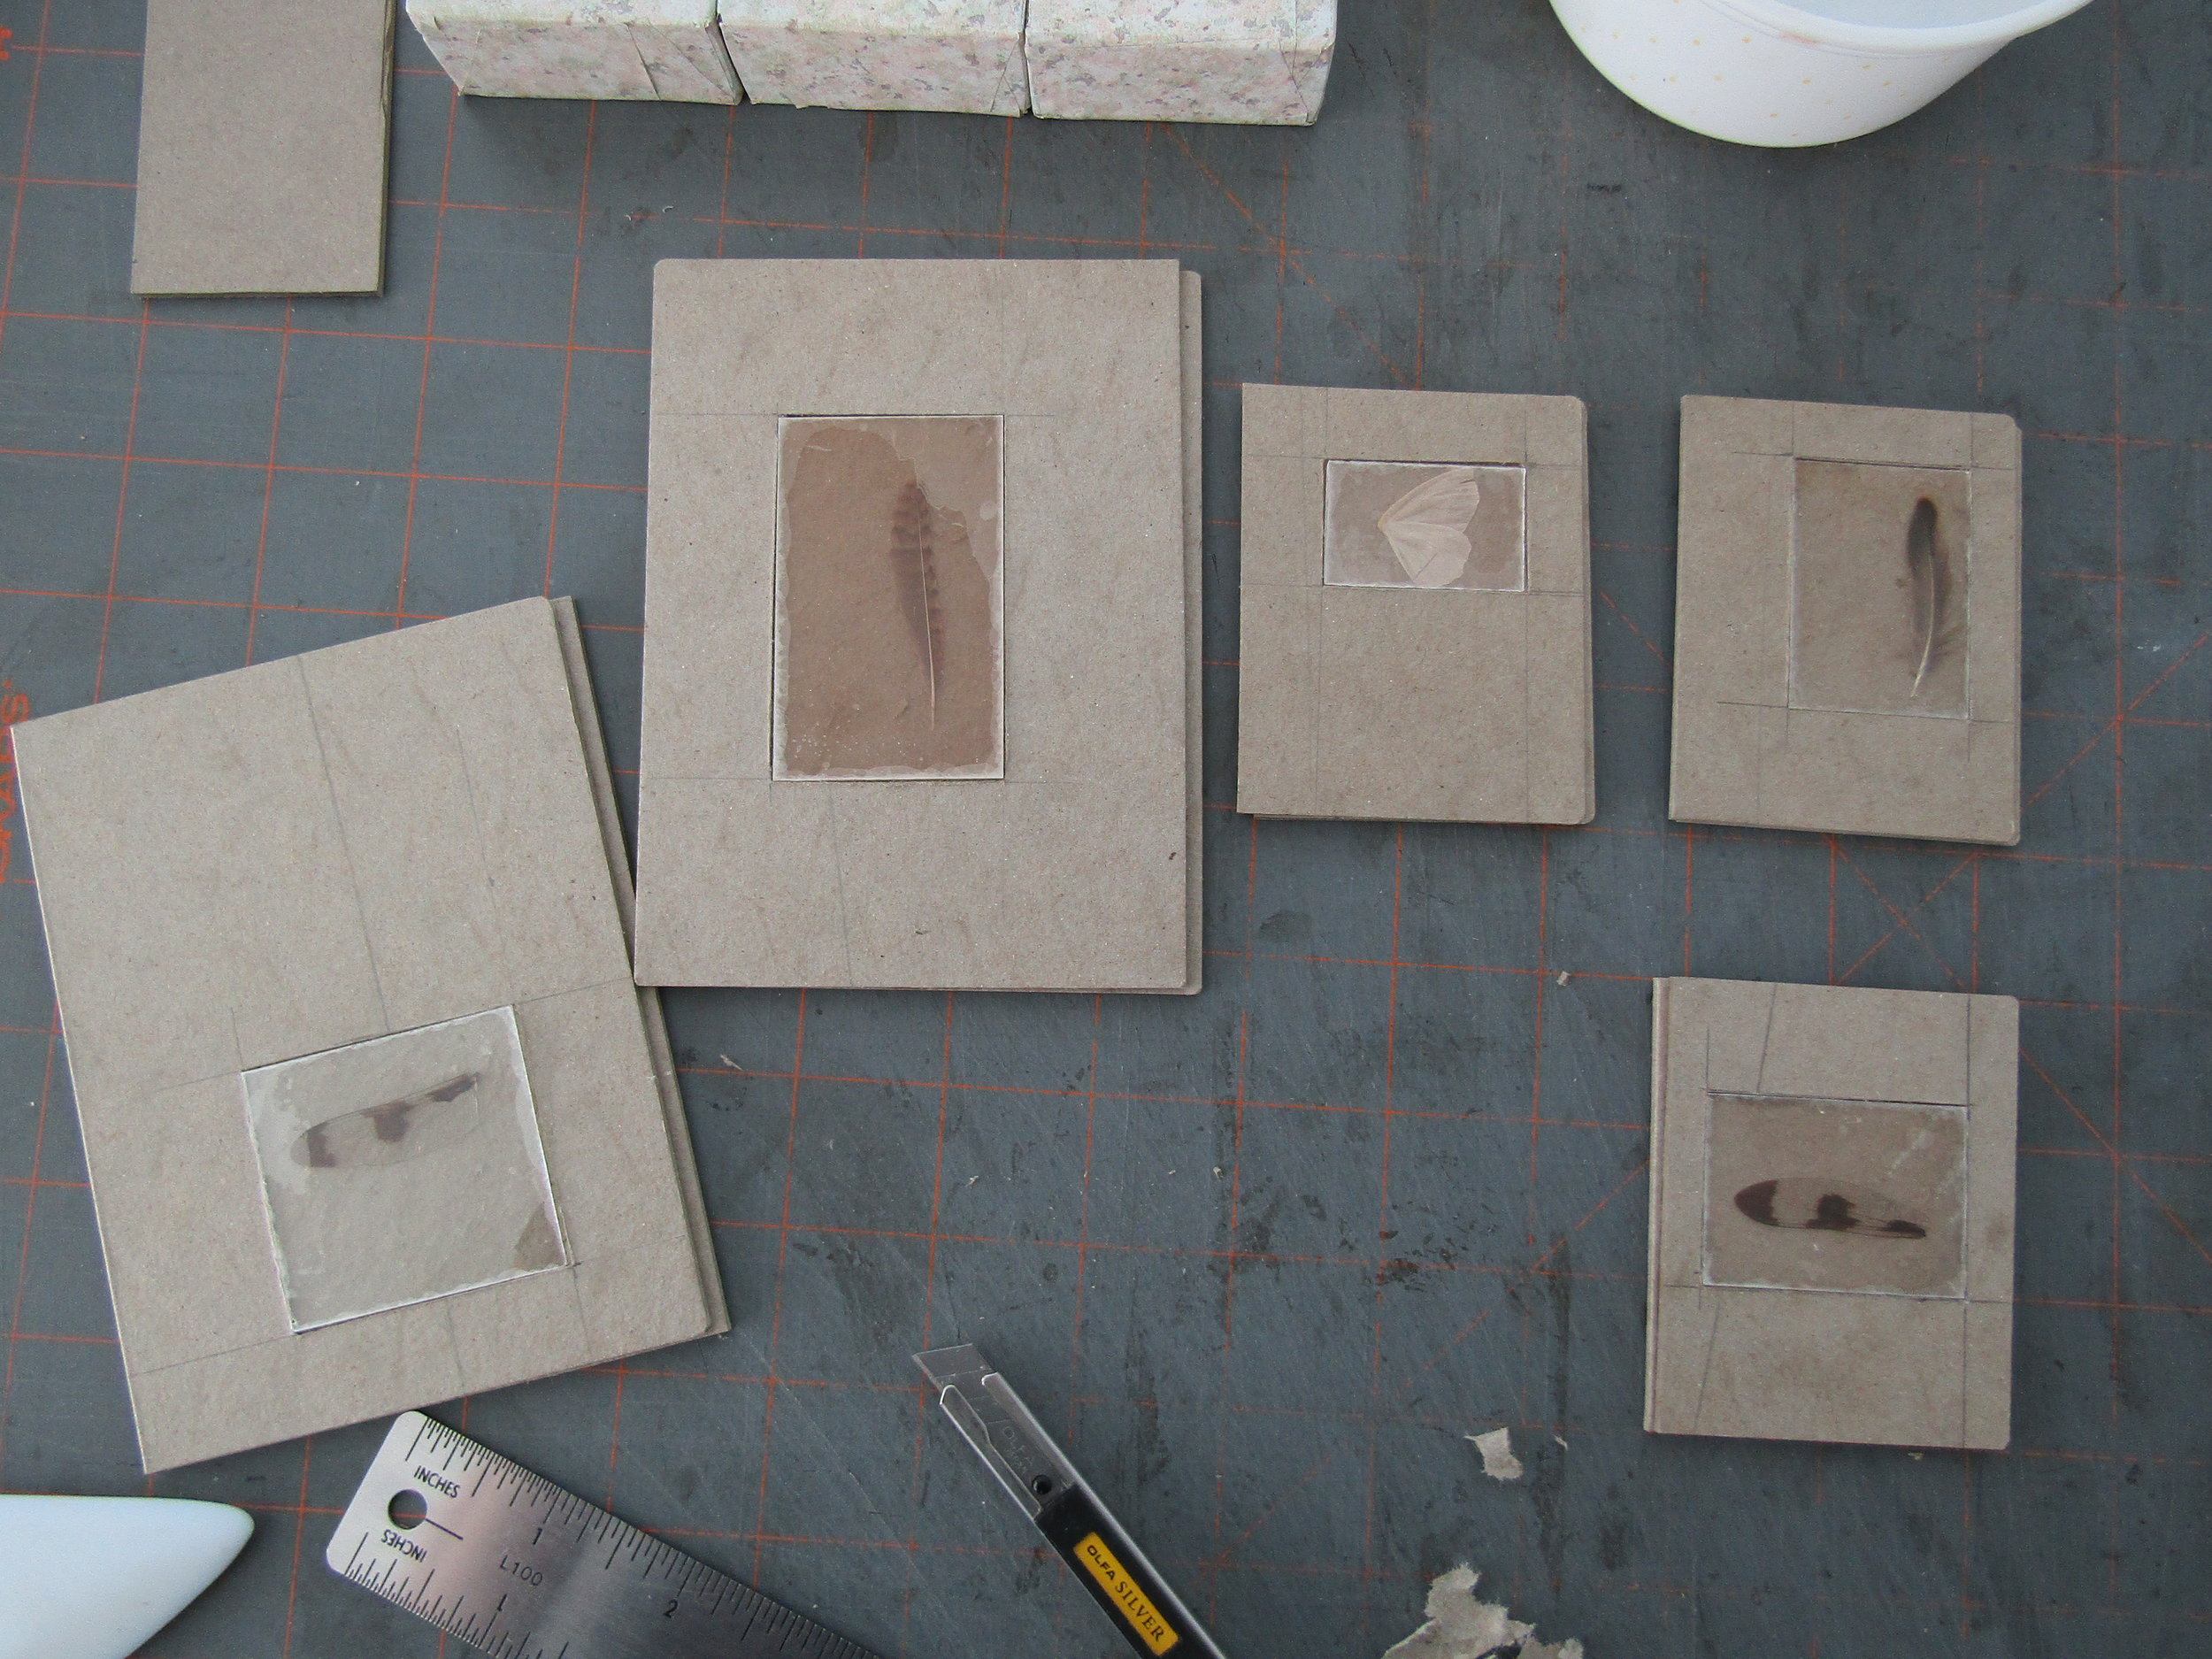 Carving recessed areas in the Davey board for windows.